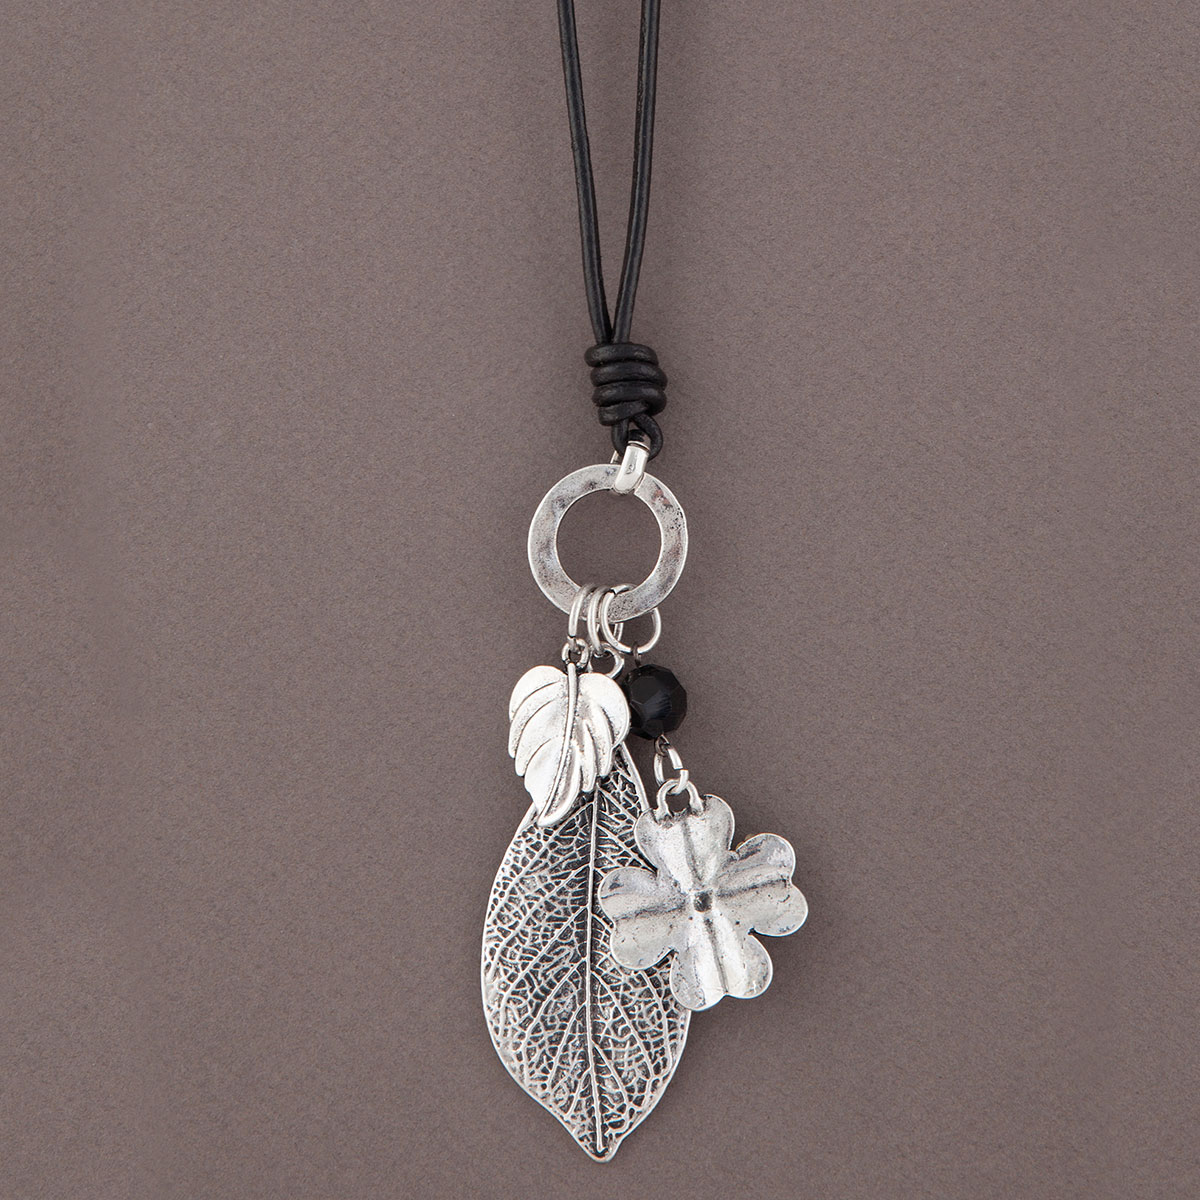 Antique Silver Leaves Dangle on Black Cord Necklace